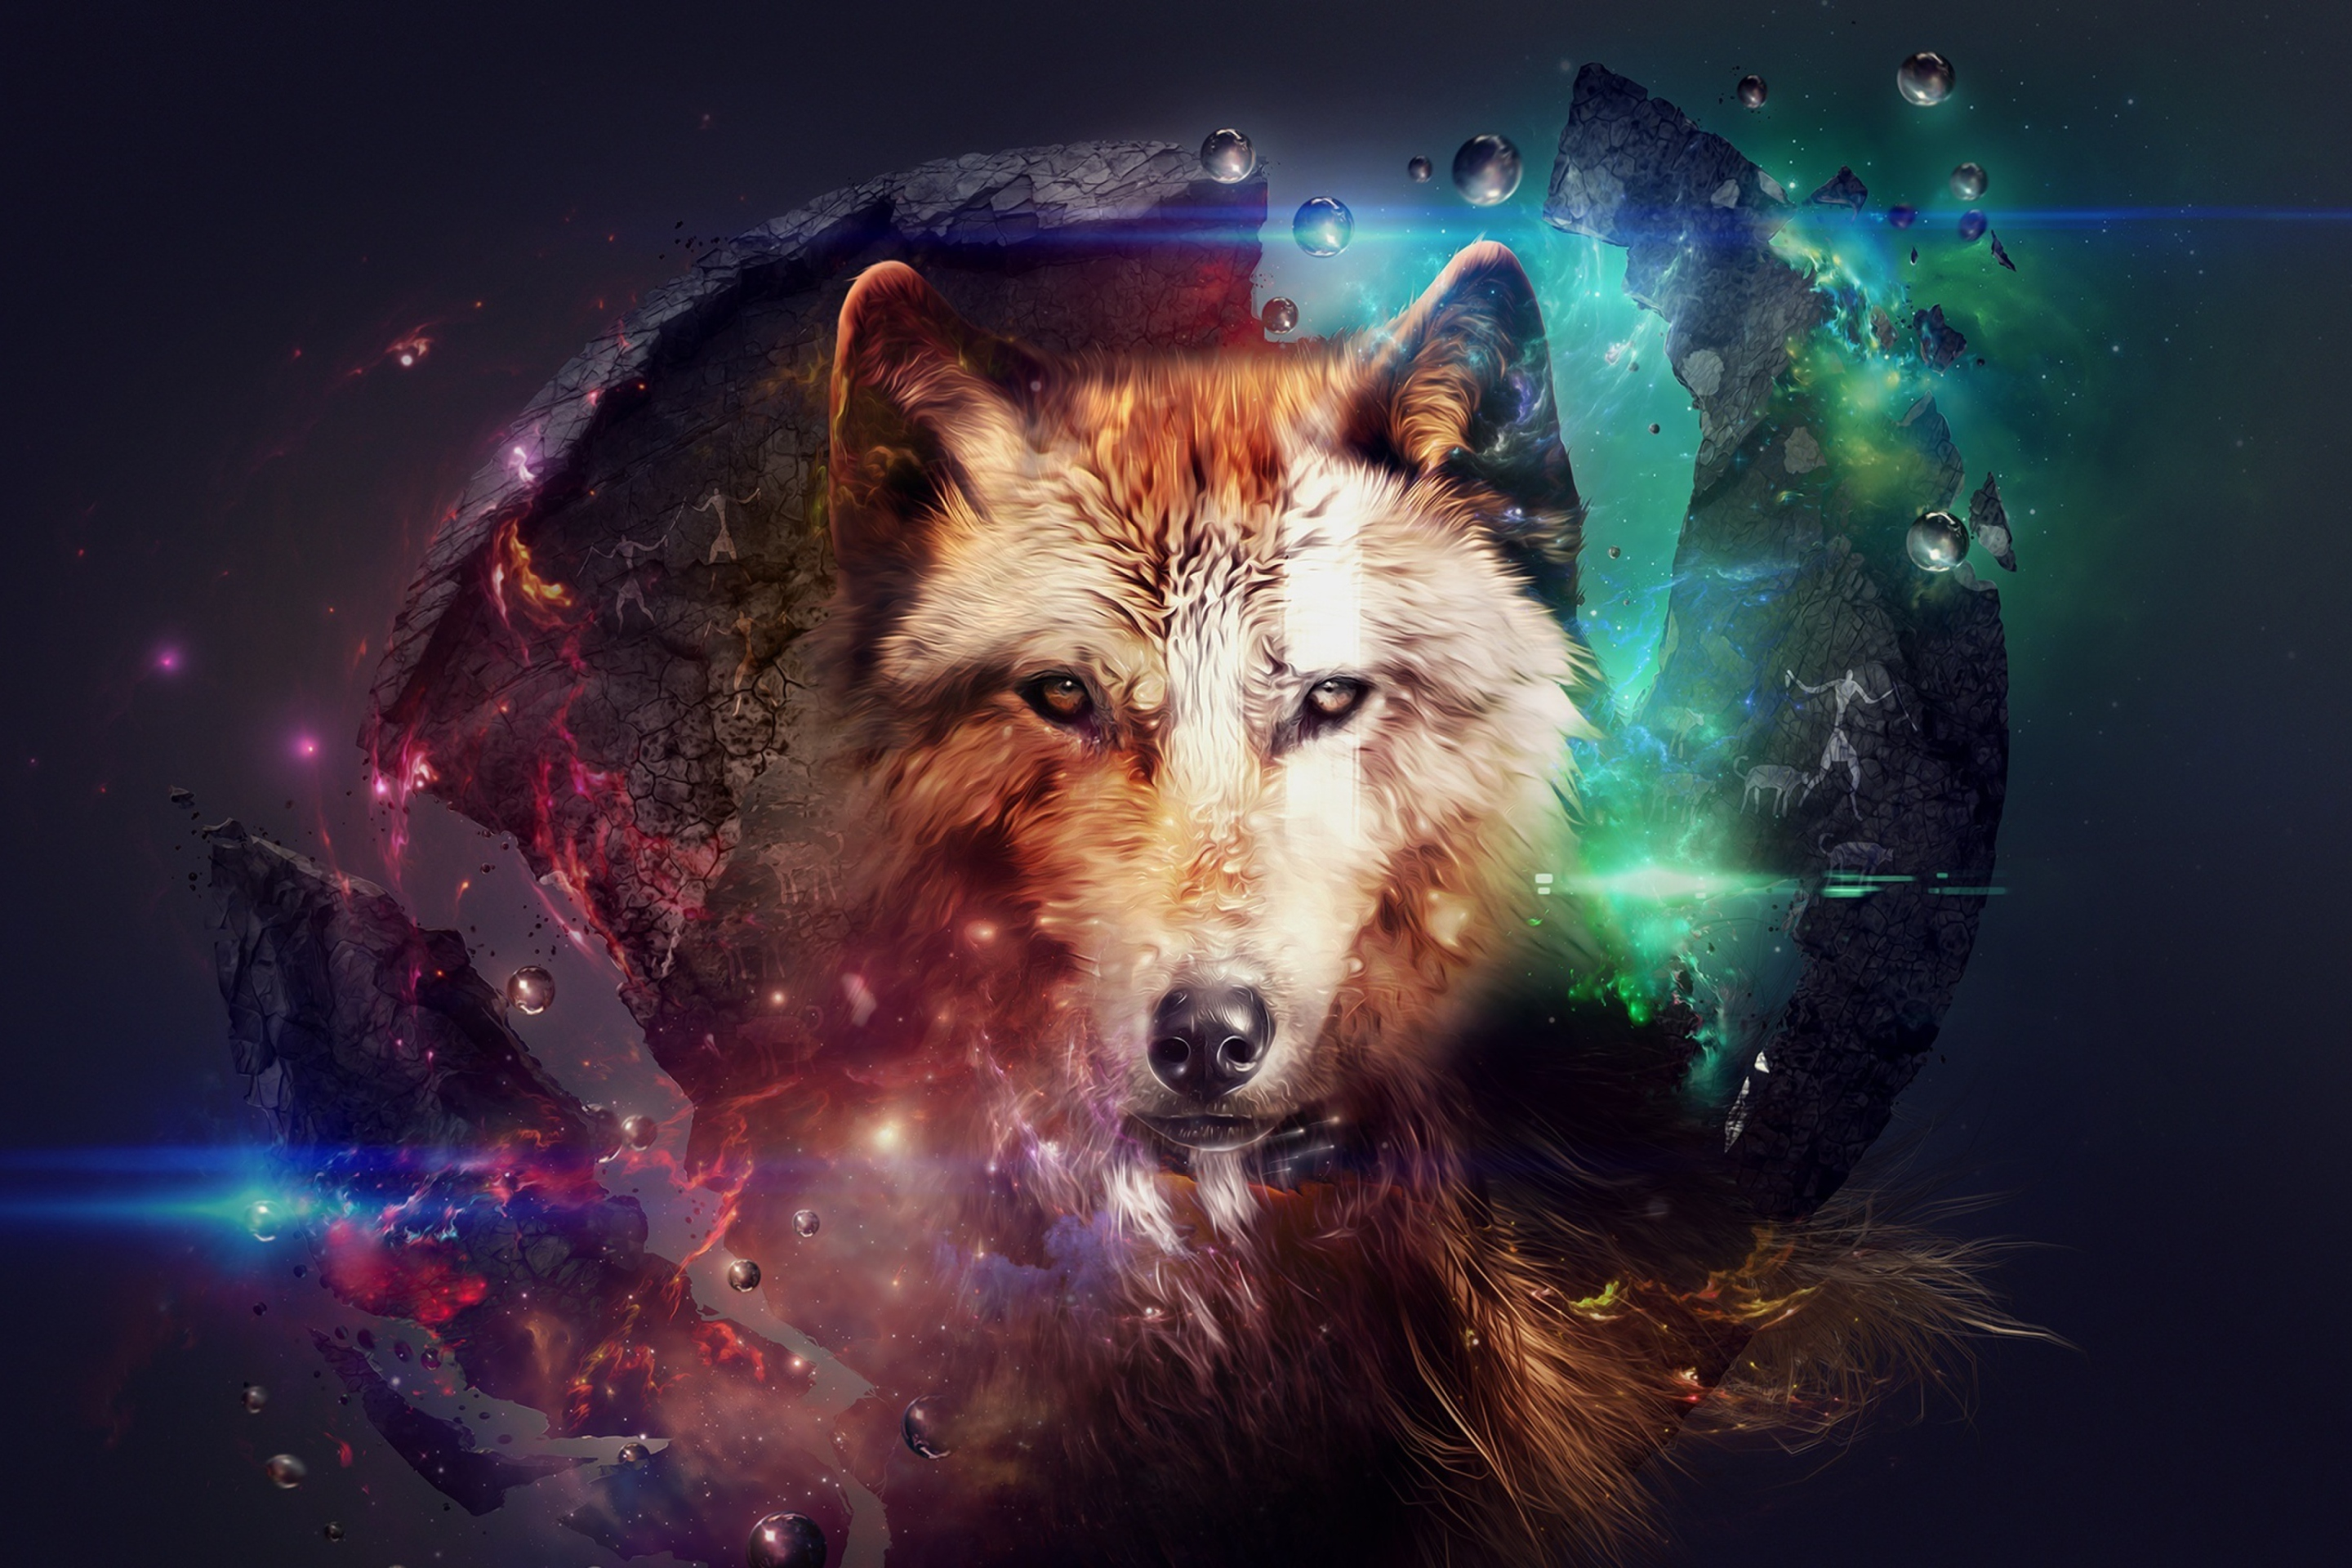 Wallpaper Lobo con luces de colores